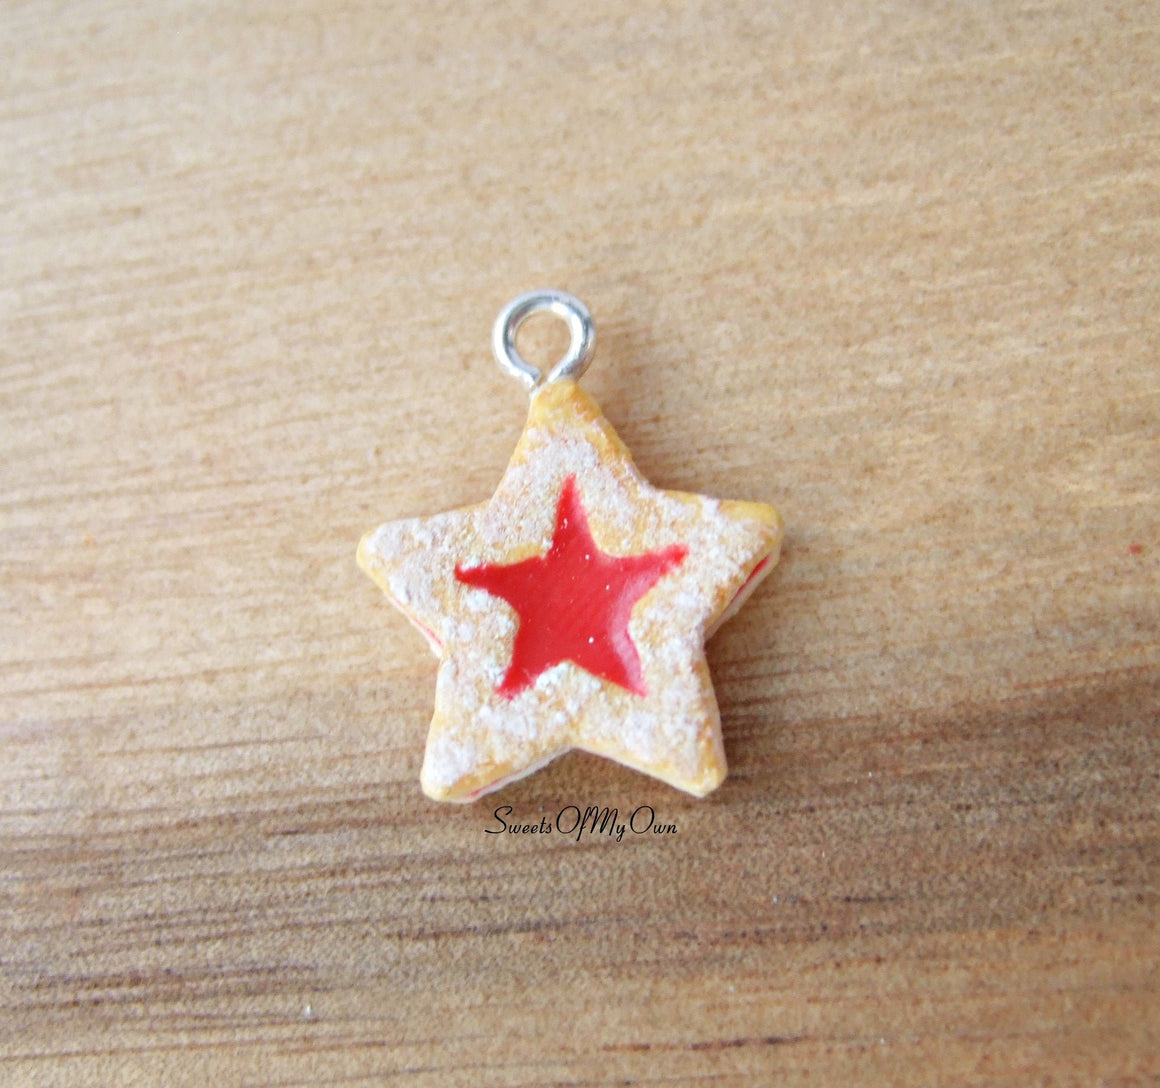 Star Jam Biscuit Charm (small) - SweetsOfMyOwn